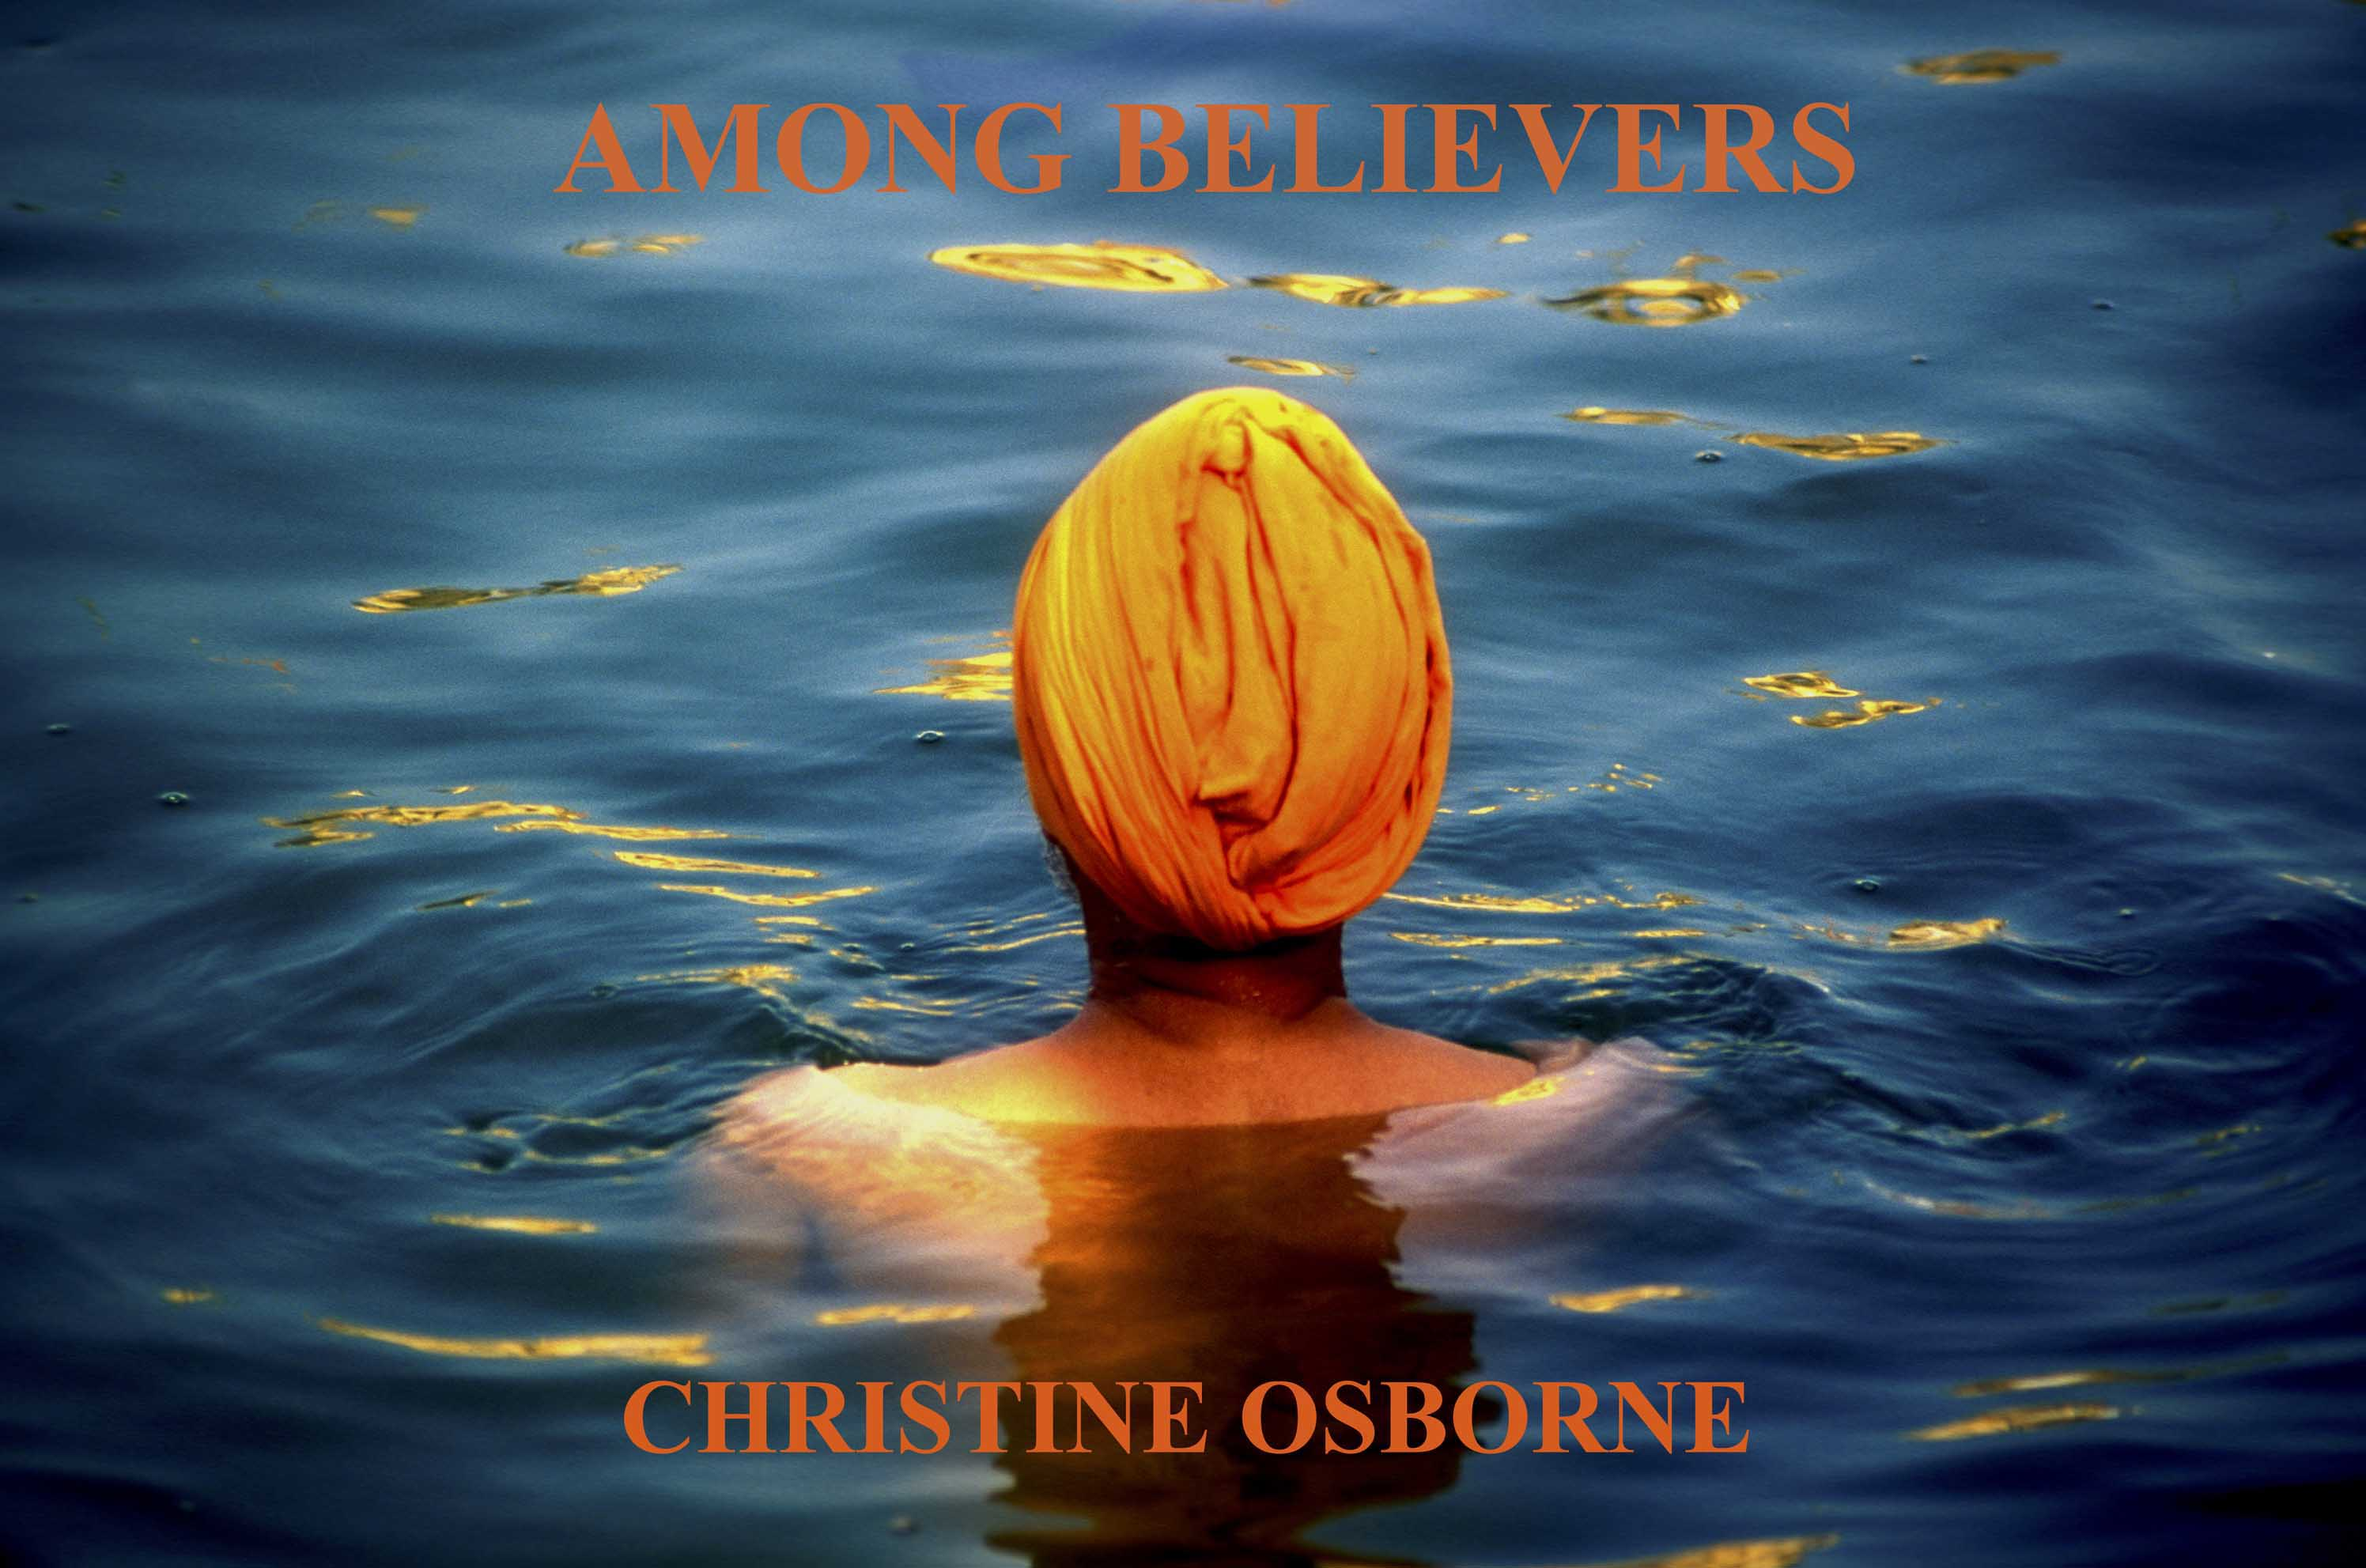 Among Believers by Christine Osborne